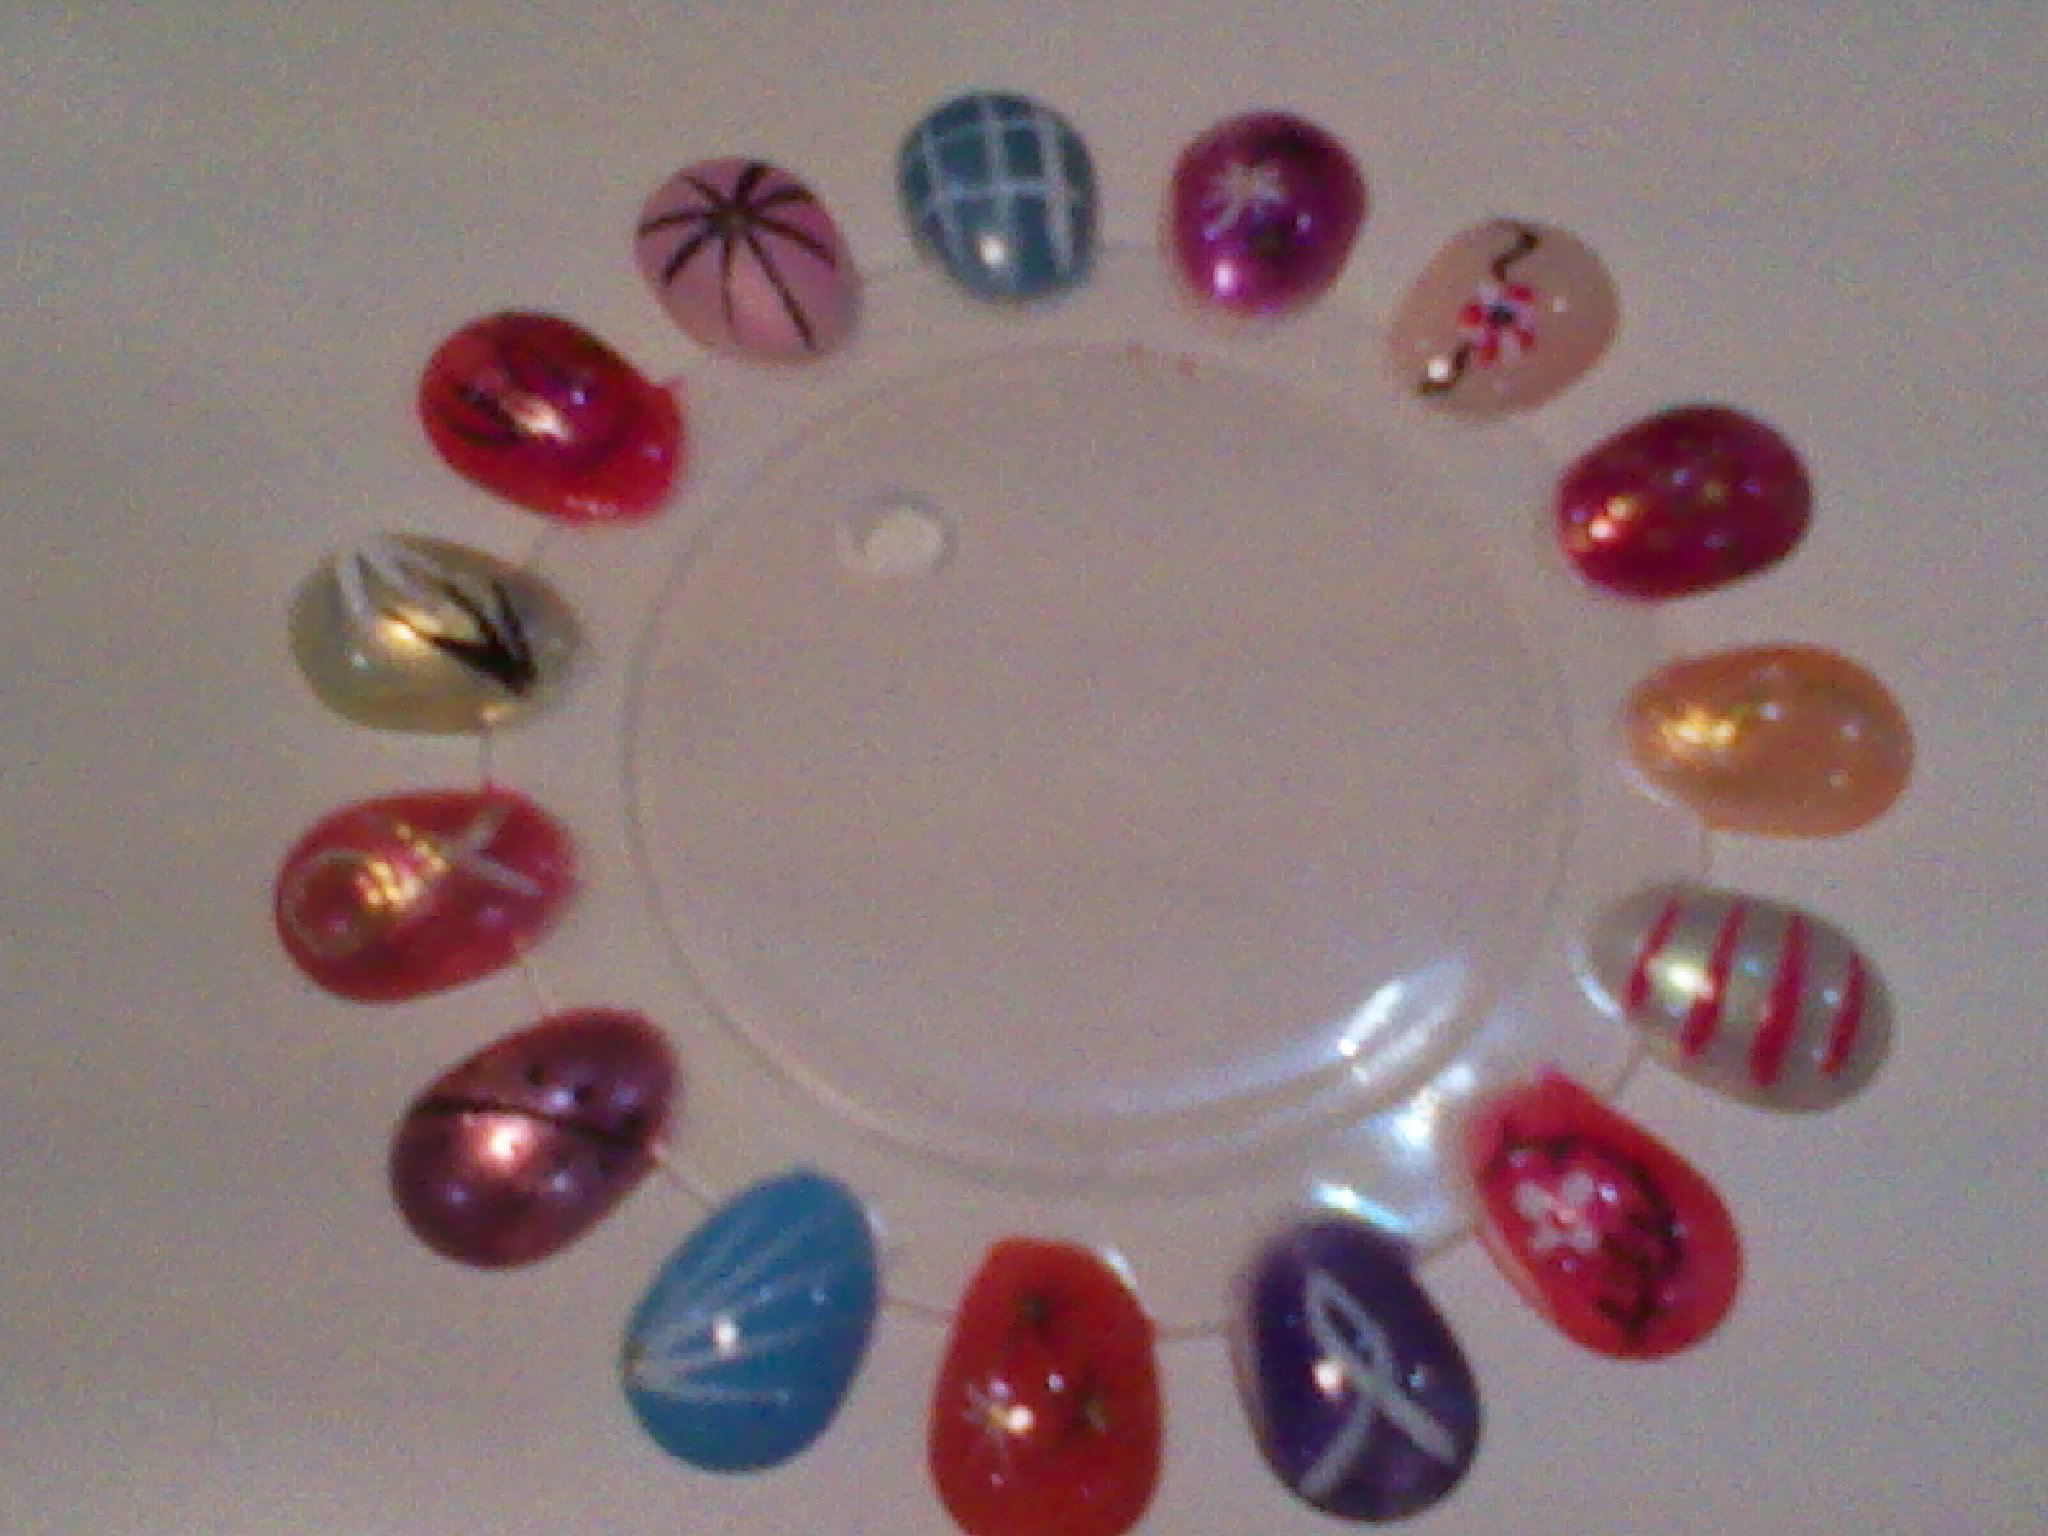 CRAVE Beauty Nail Art Wheel